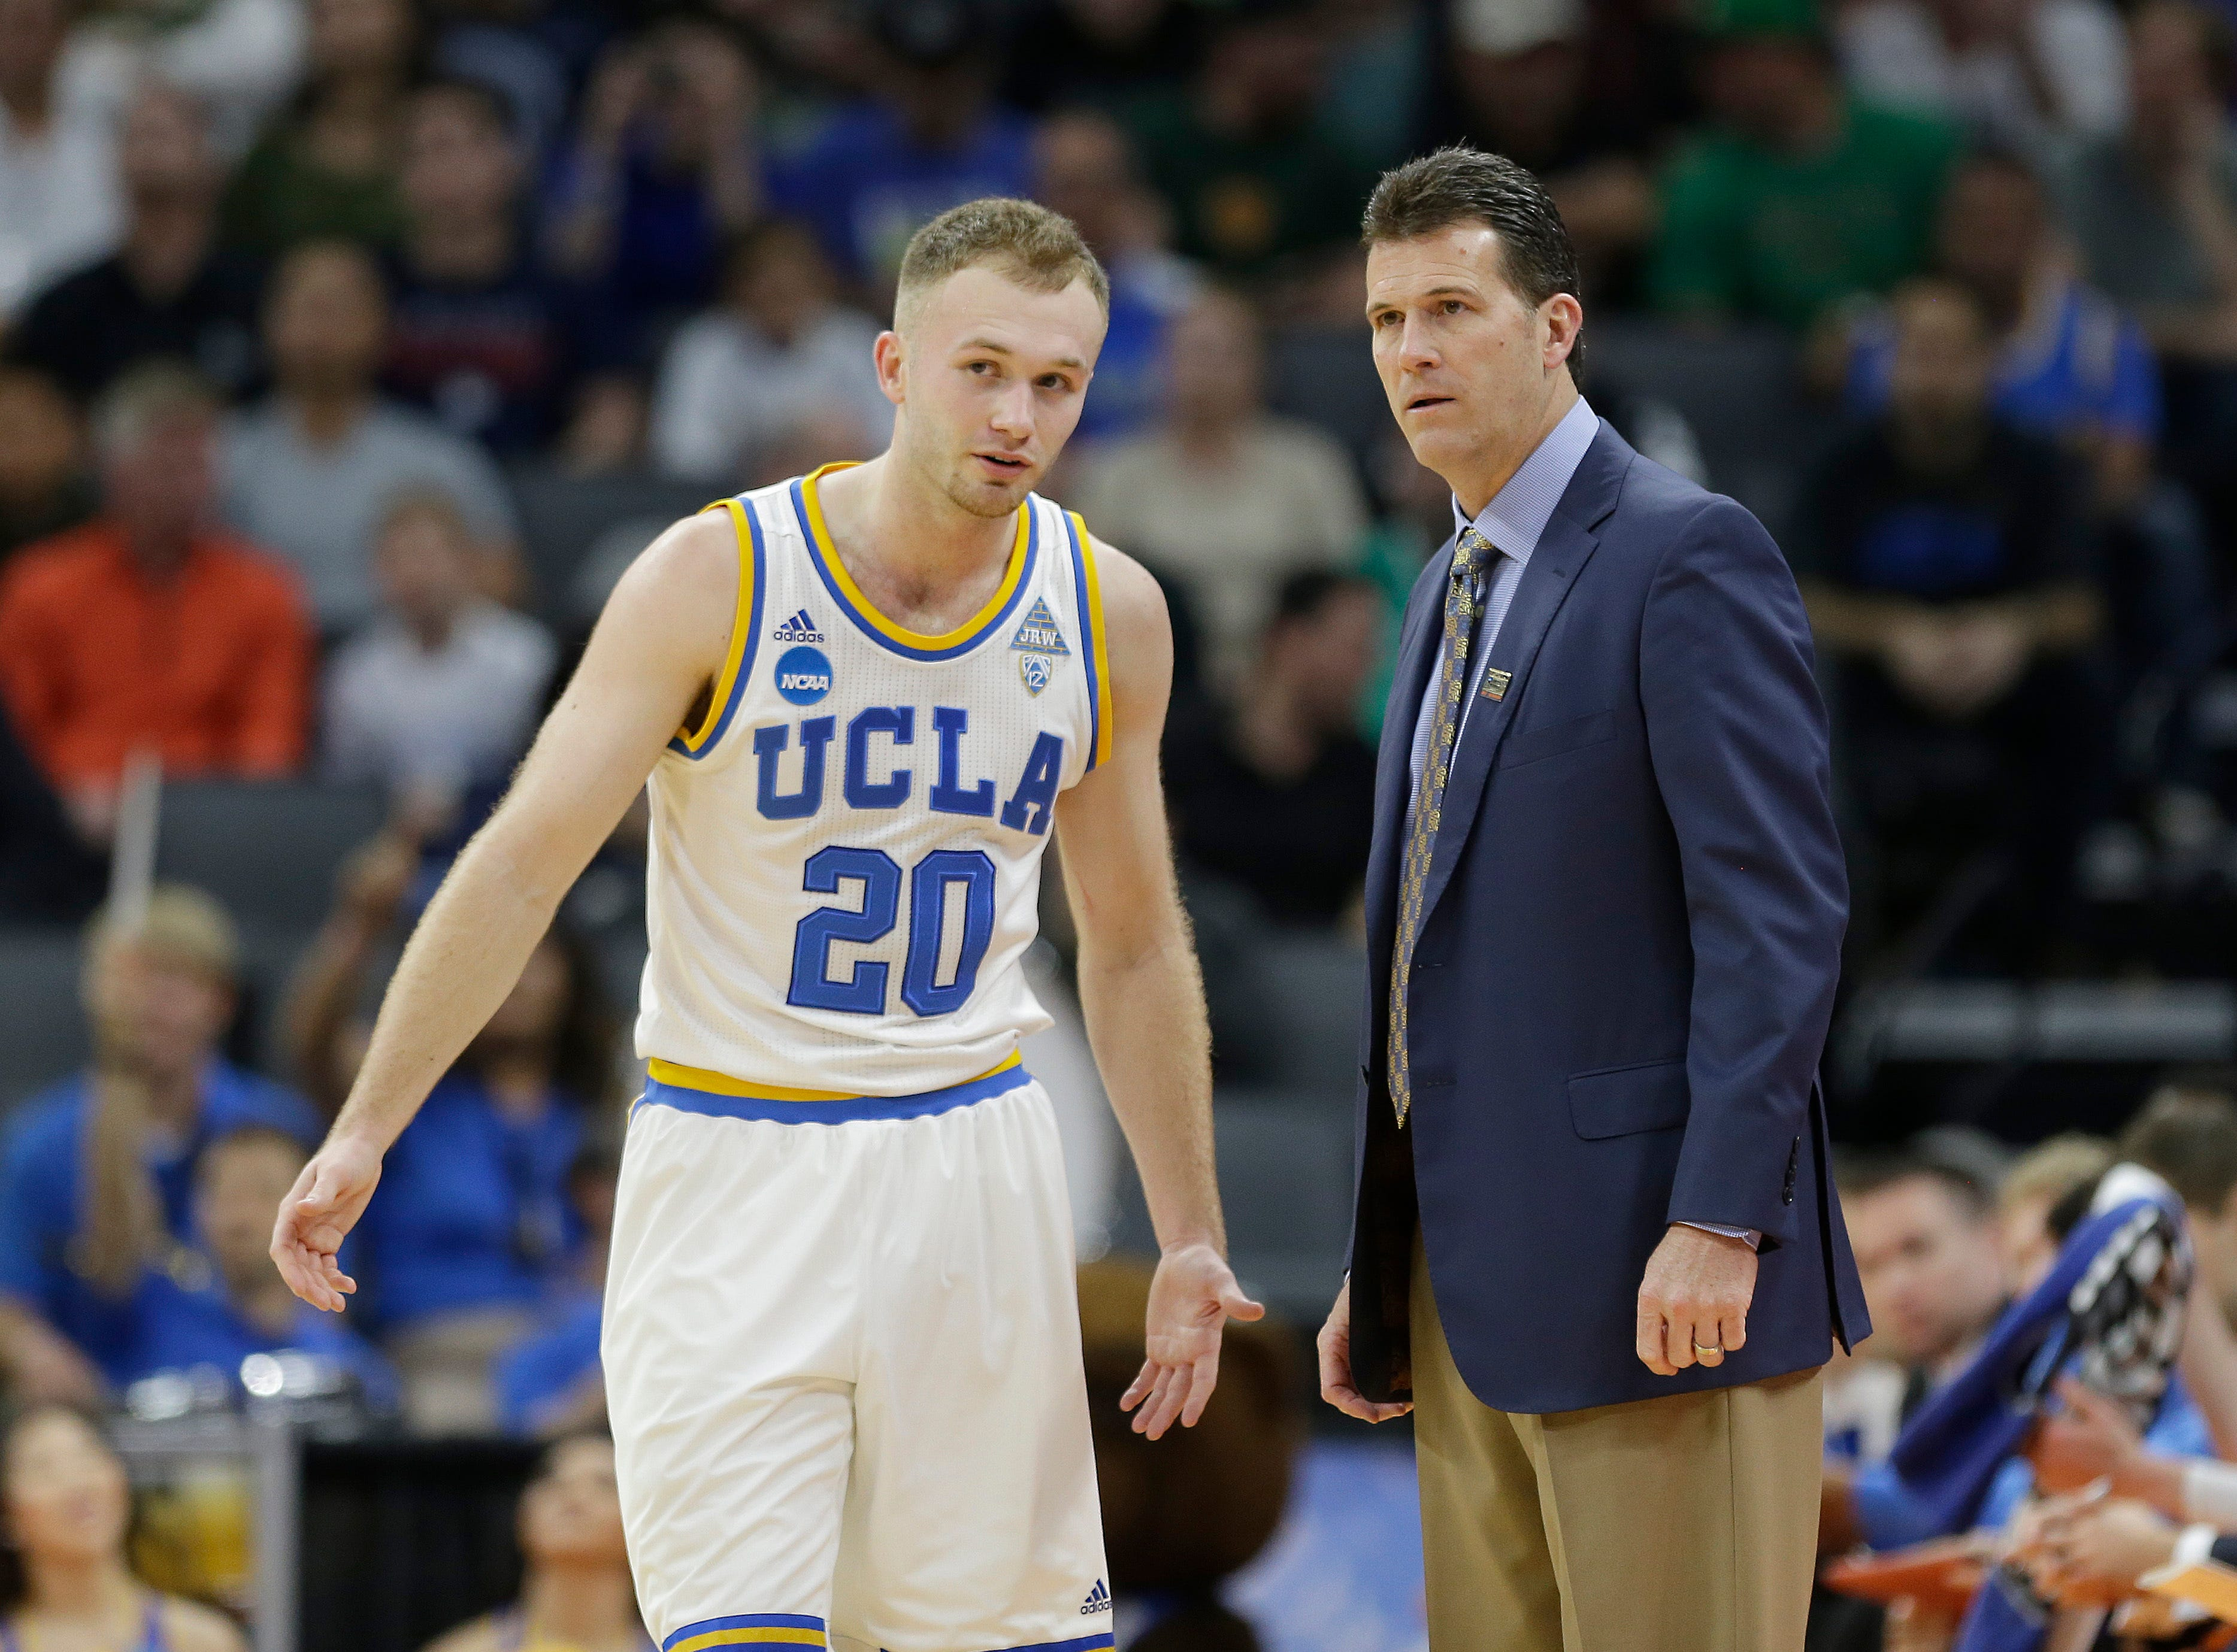 UCLA coach Steve Alford talks with his son, guard Bryce Alford, during the first half of a first-round game against Kent State in the men's NCAA college basketball tournament in Sacramento, Calif., Friday, March 17, 2017. (AP Photo/Rich Pedroncelli)